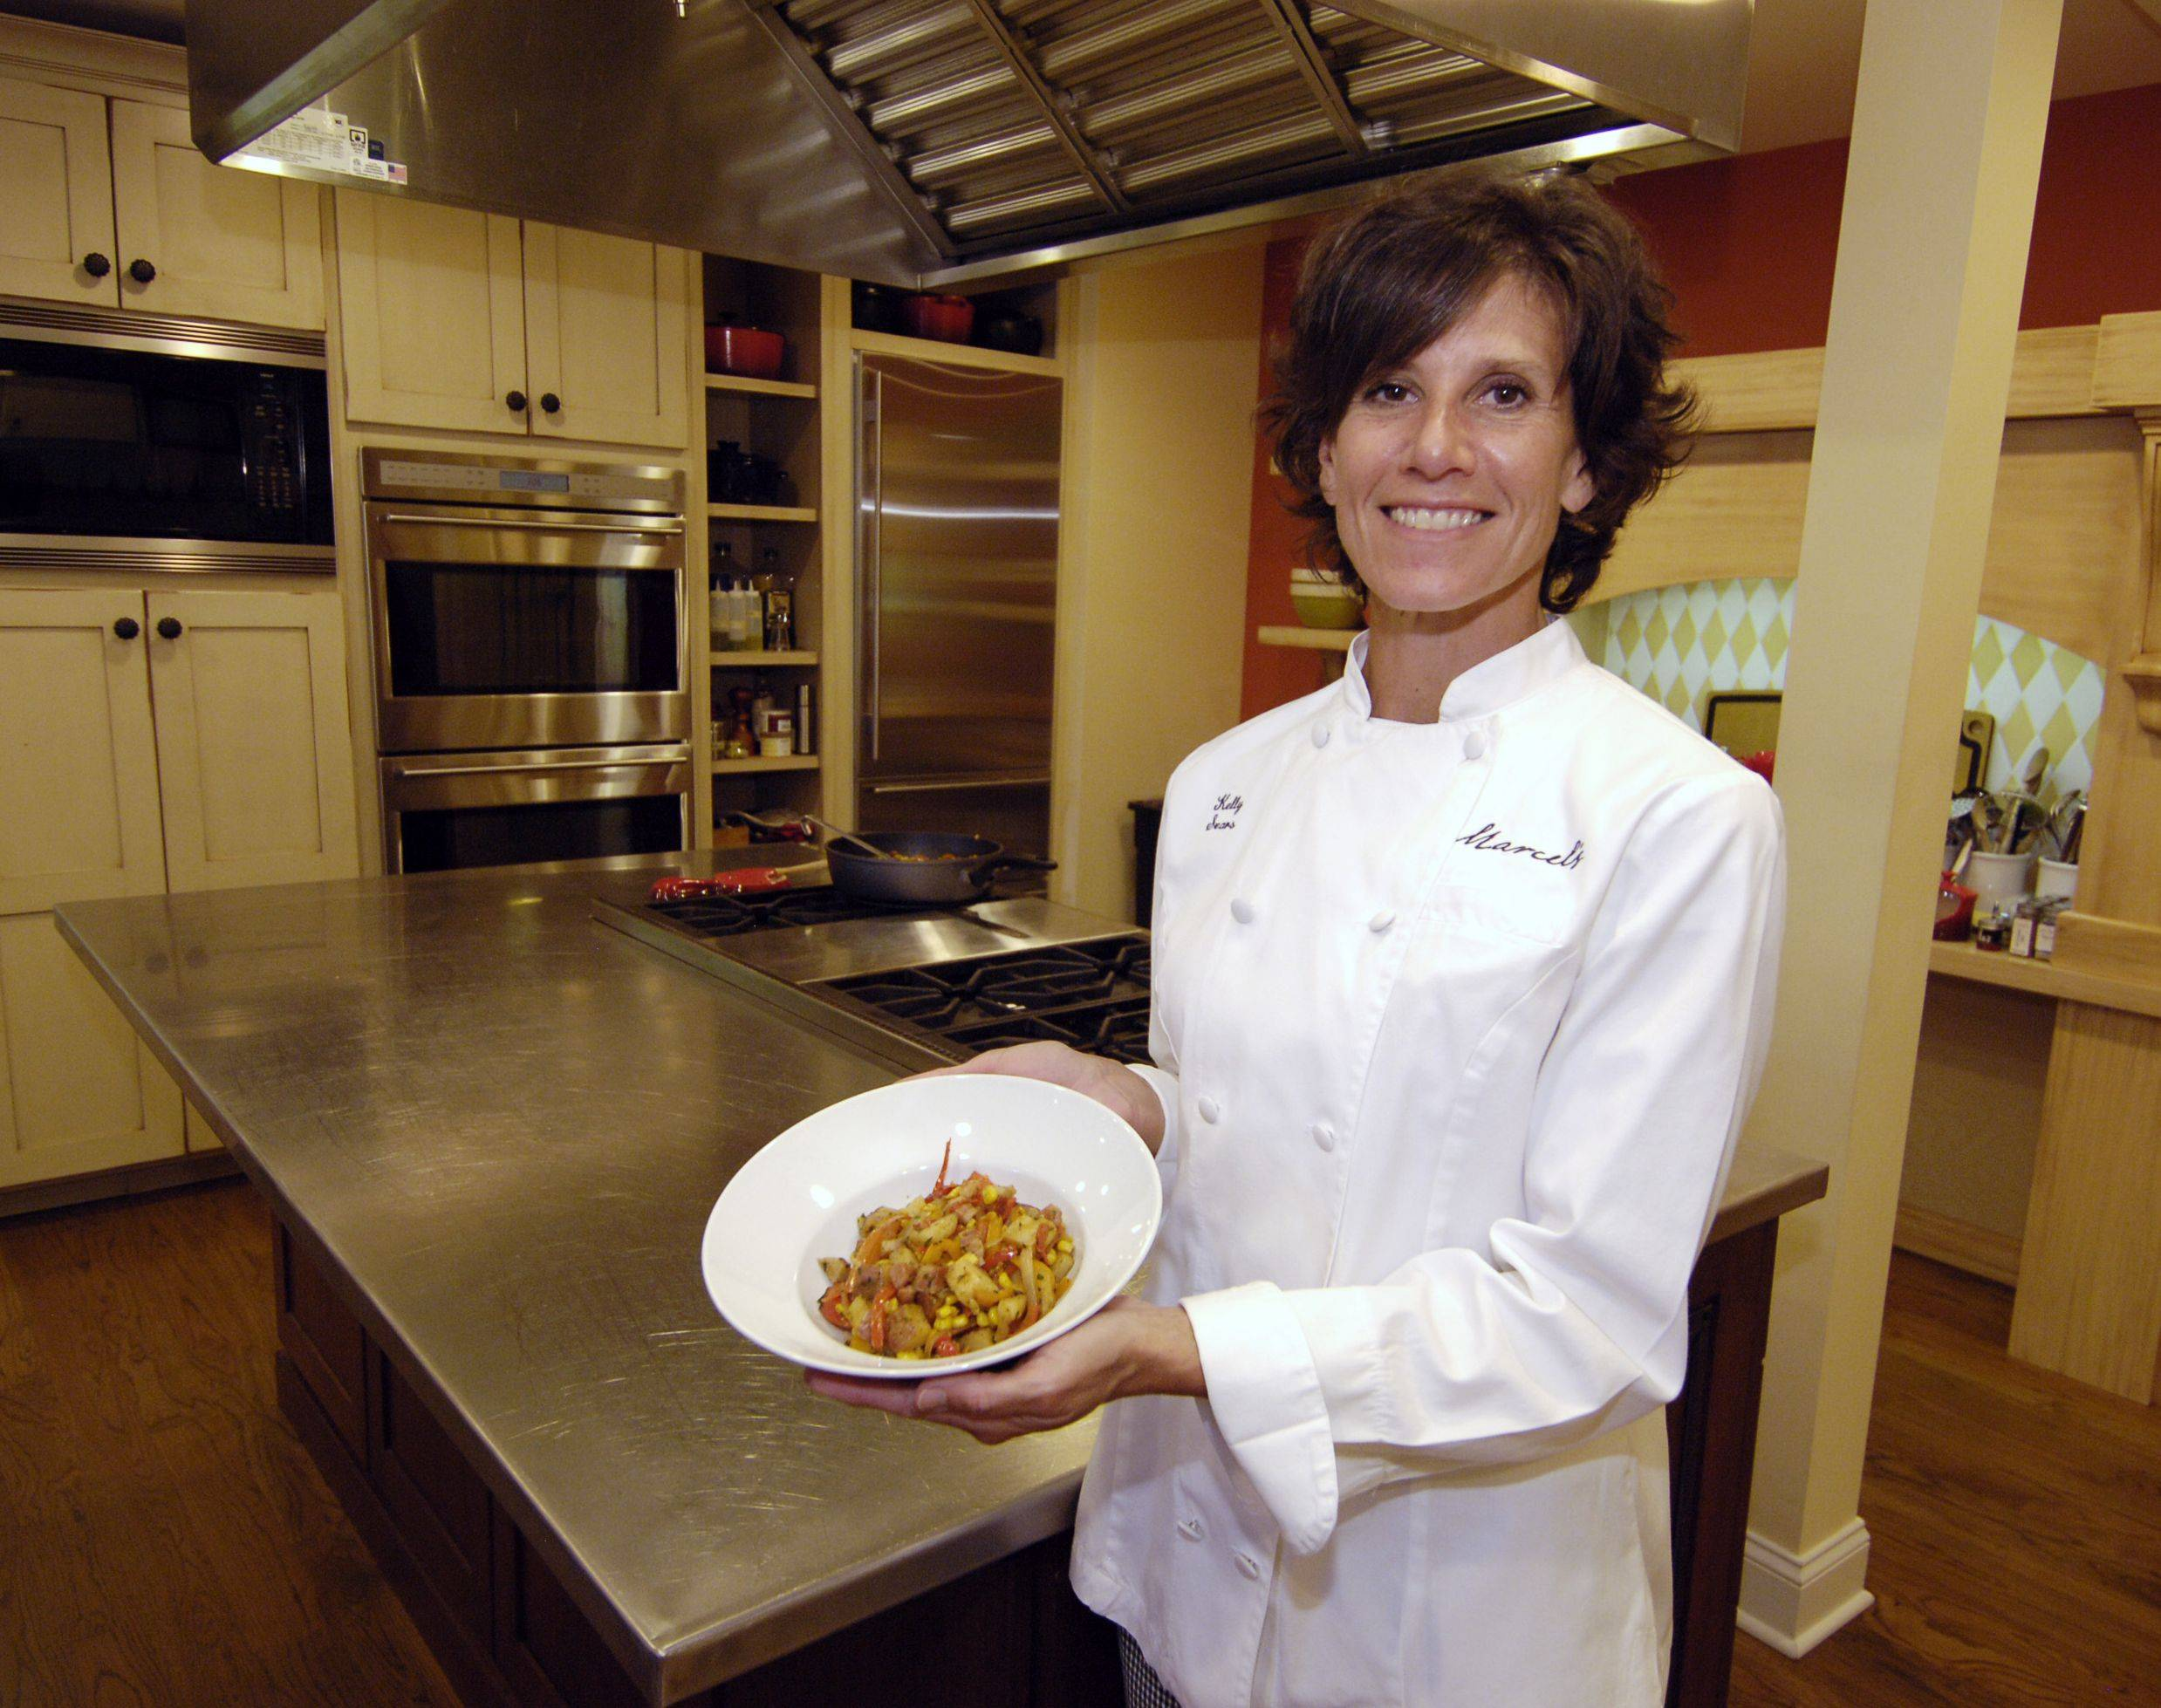 Chef Kelly Sears says this Corn Saut� with Pancetta, Potatoes and Peppers can be tweaked to reflect what's in season and what's in your pantry. Sears coordinates cooking classes at Marcel's Culinary Experience in Glen Ellyn.